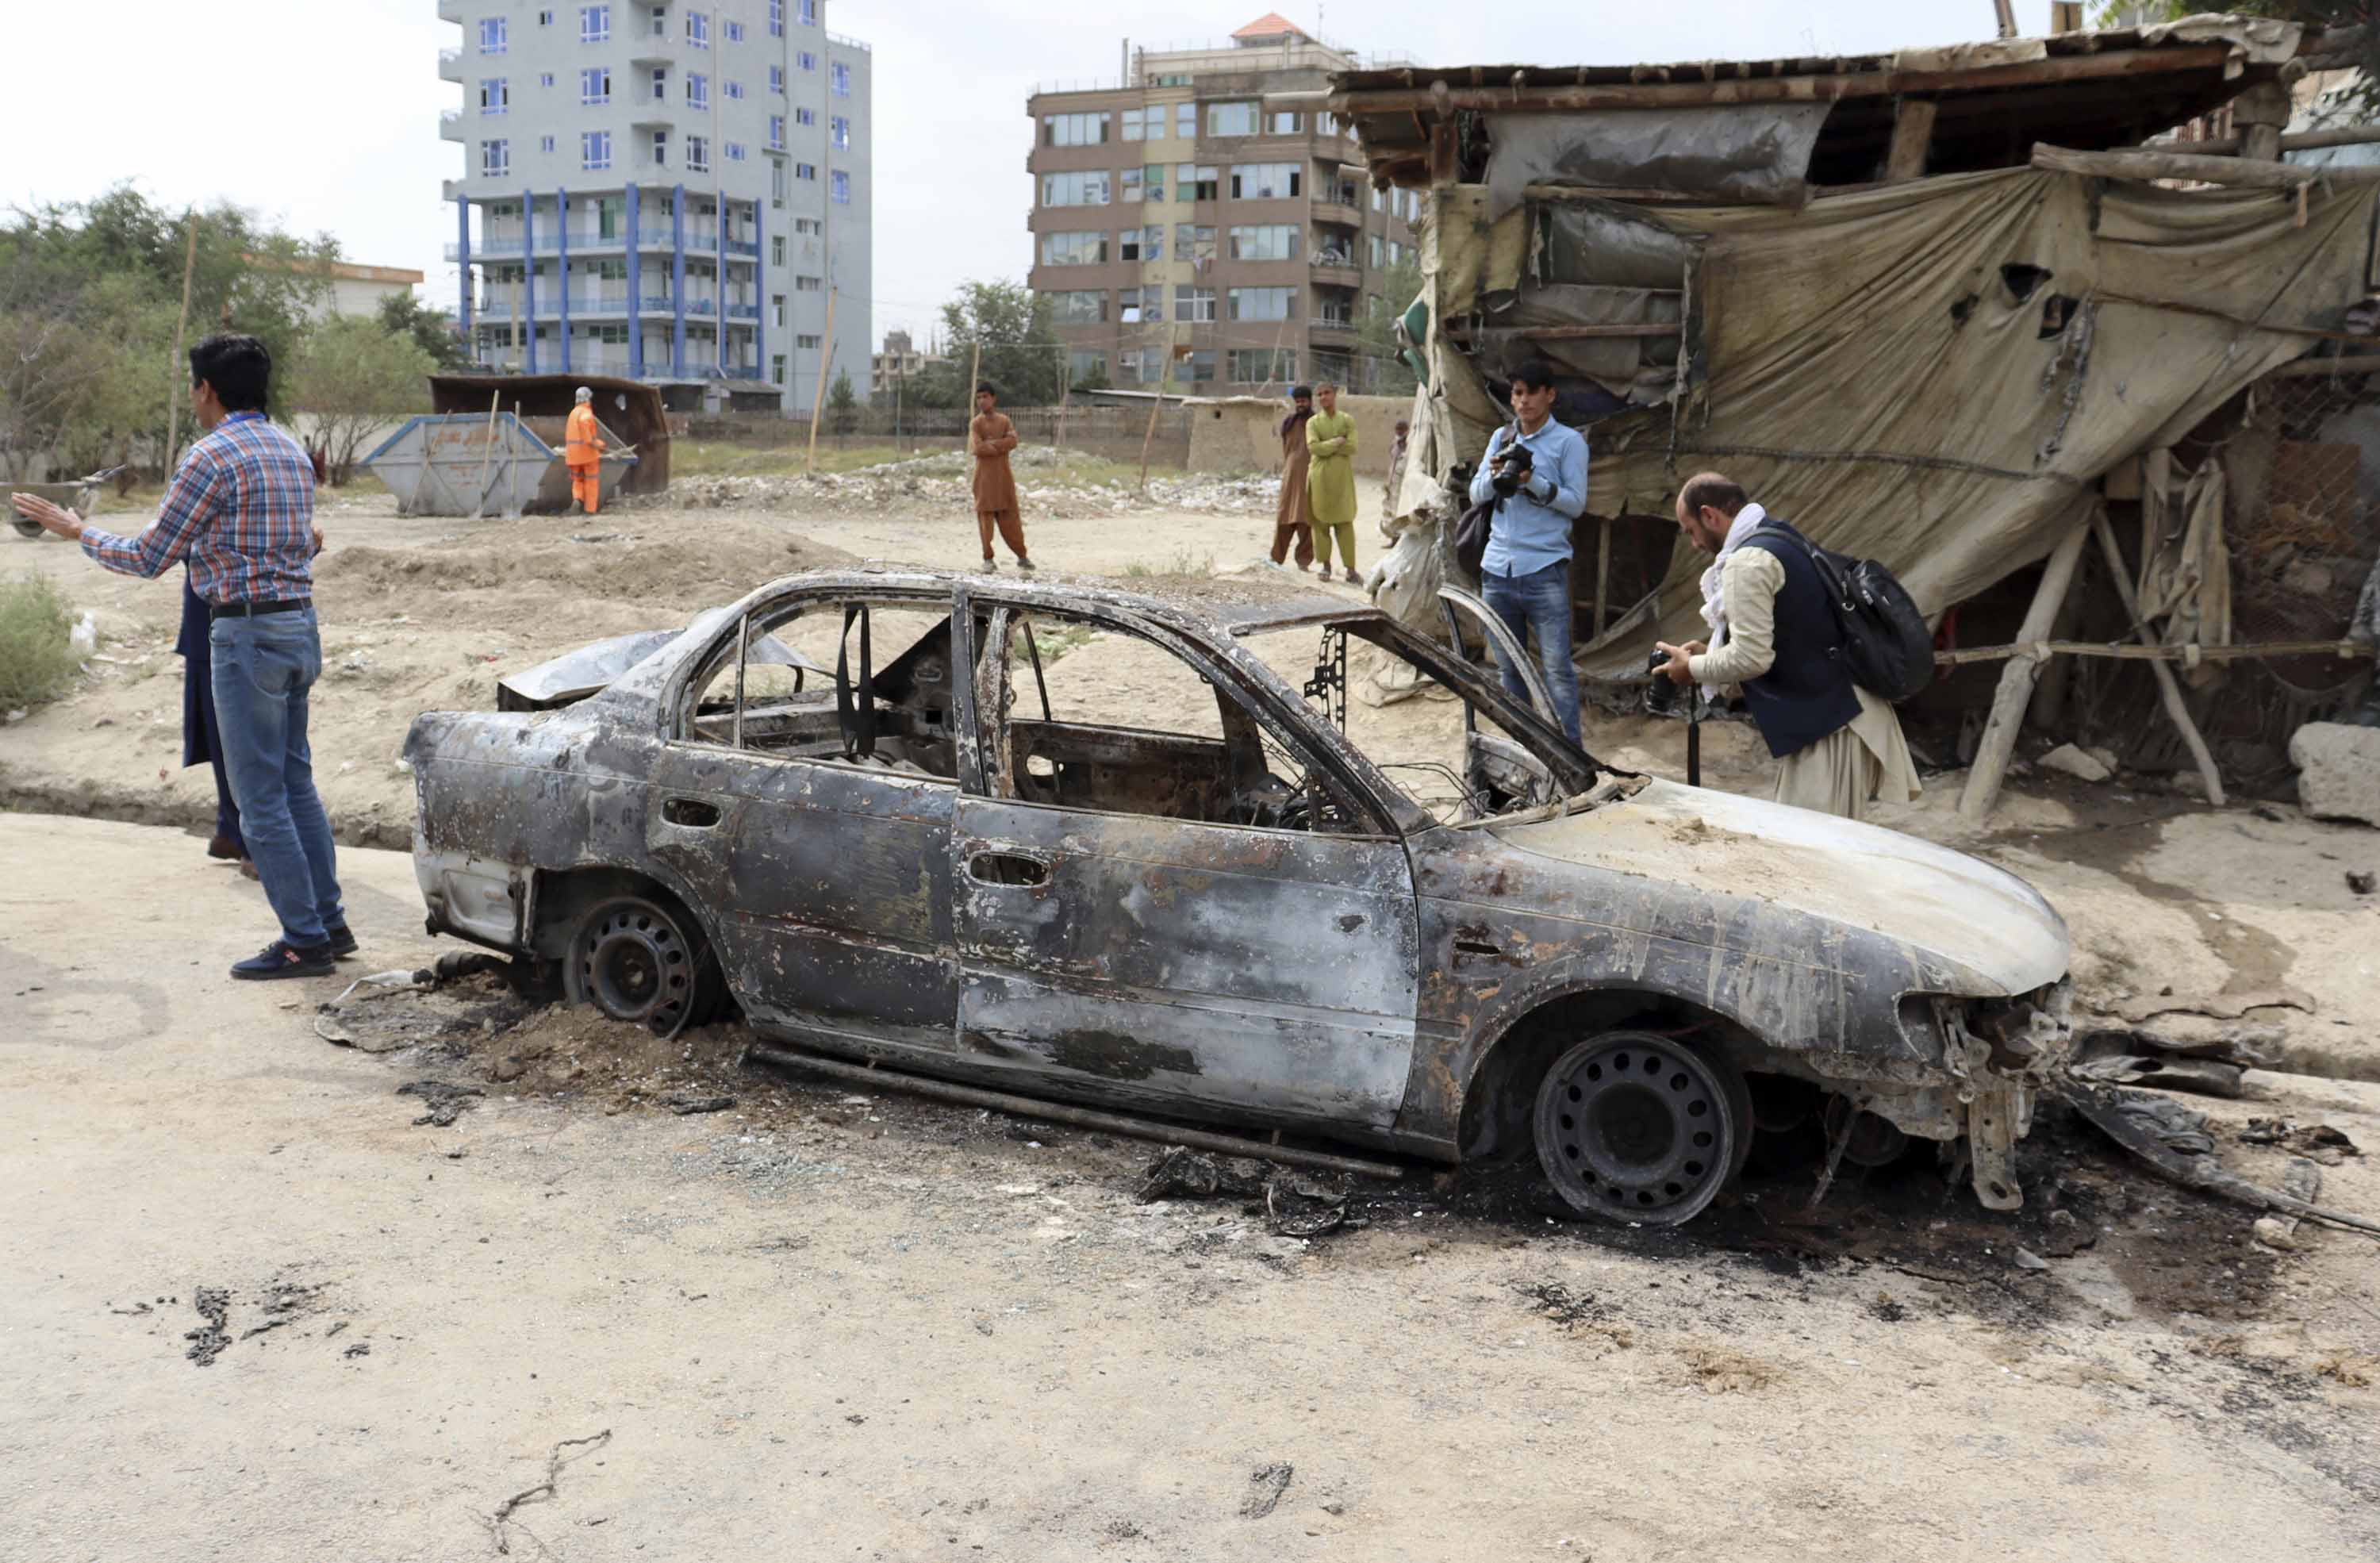 Journalists take photos of a destroyed vehicle where rockets were fired from, in Kabul, Afghanistan, on Monday, August 30.